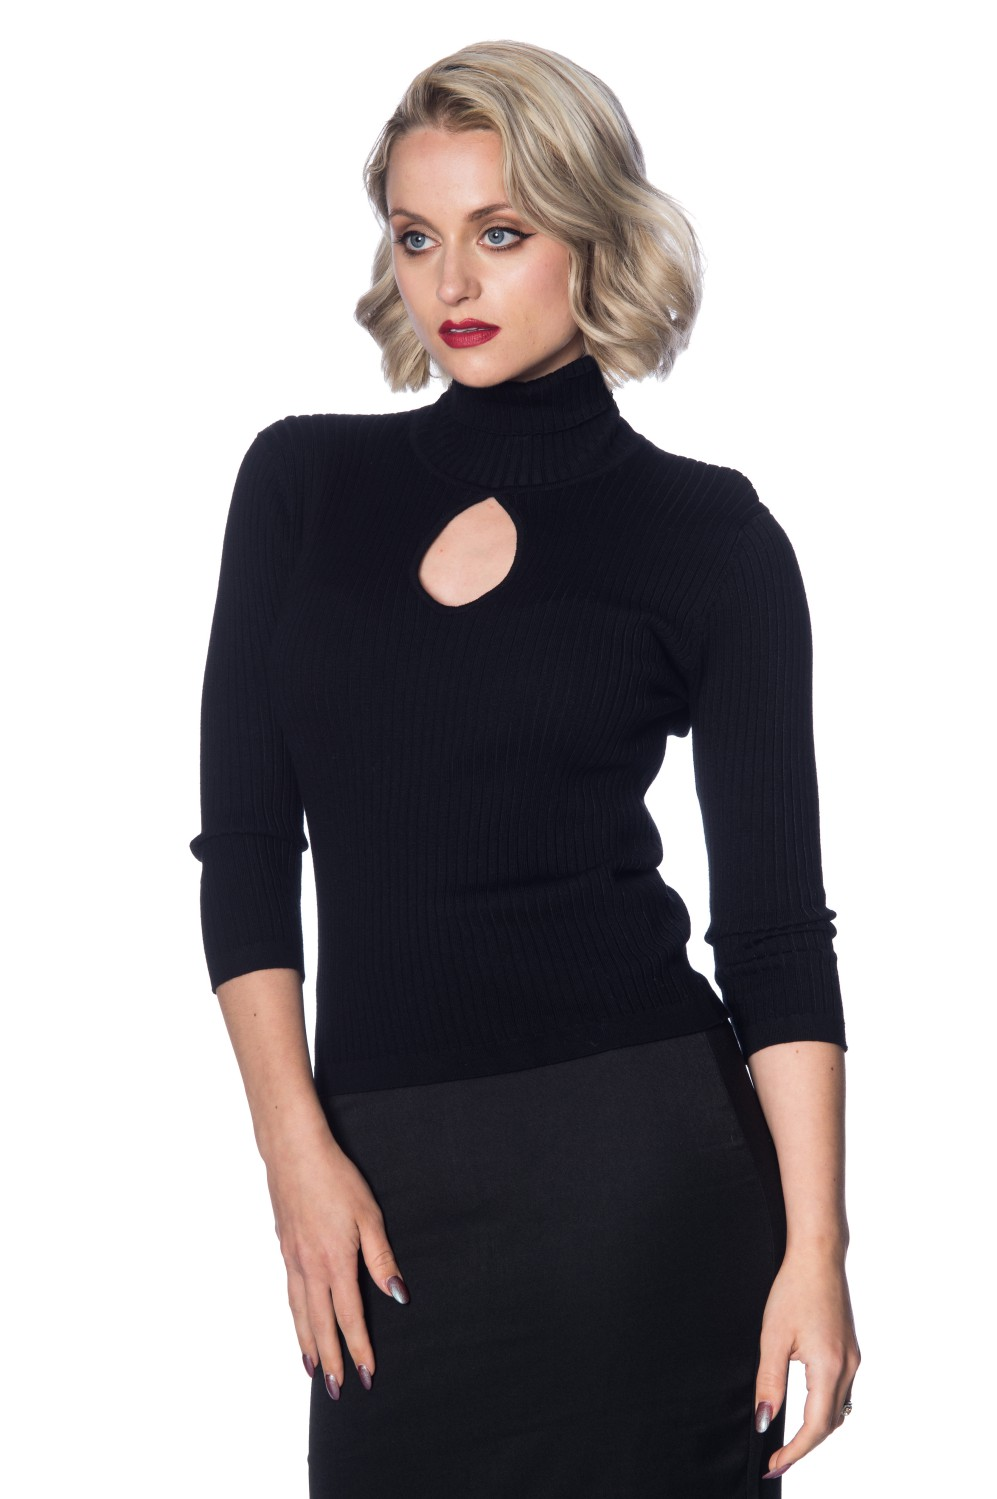 Banned Retro 60s Black Louise Turtleneck Knit Top